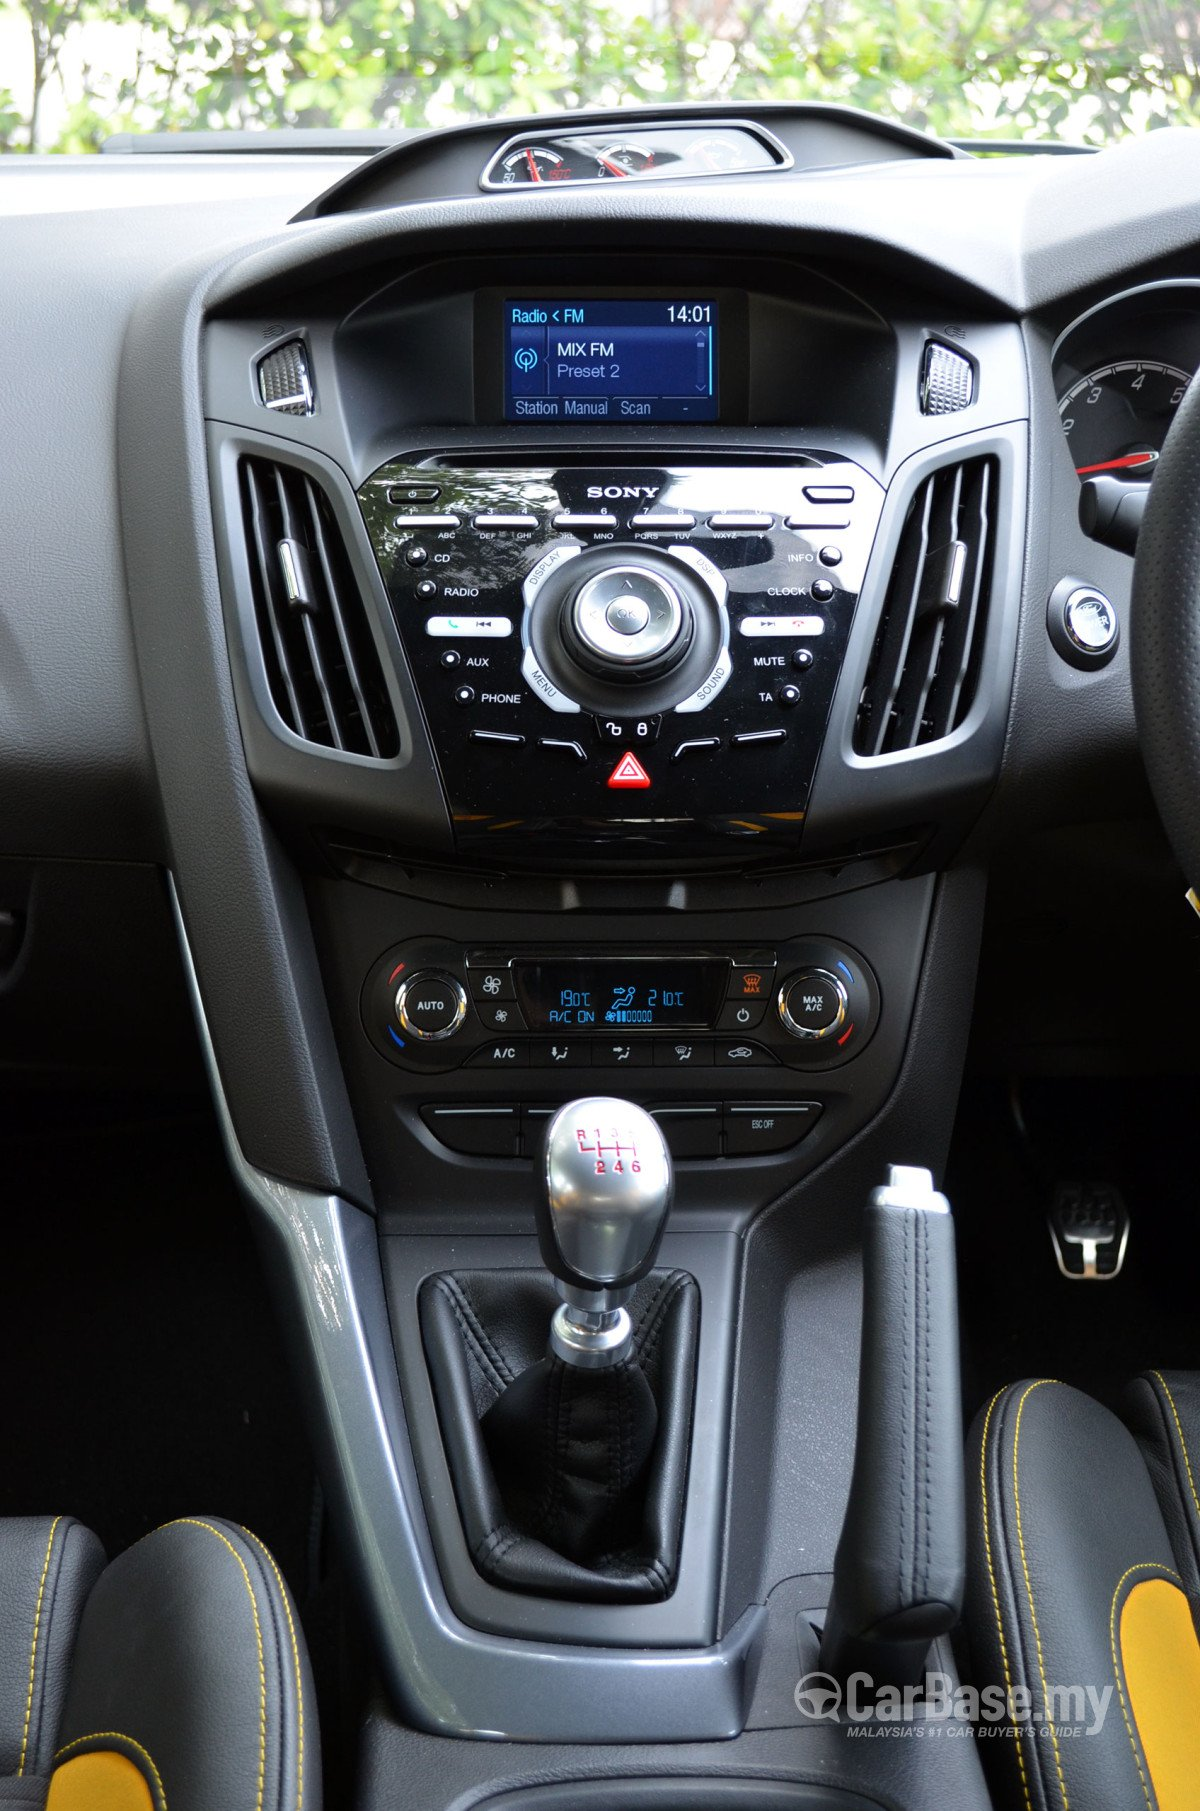 Ford Focus St Mk3 C346 2012 Interior Image In Malaysia